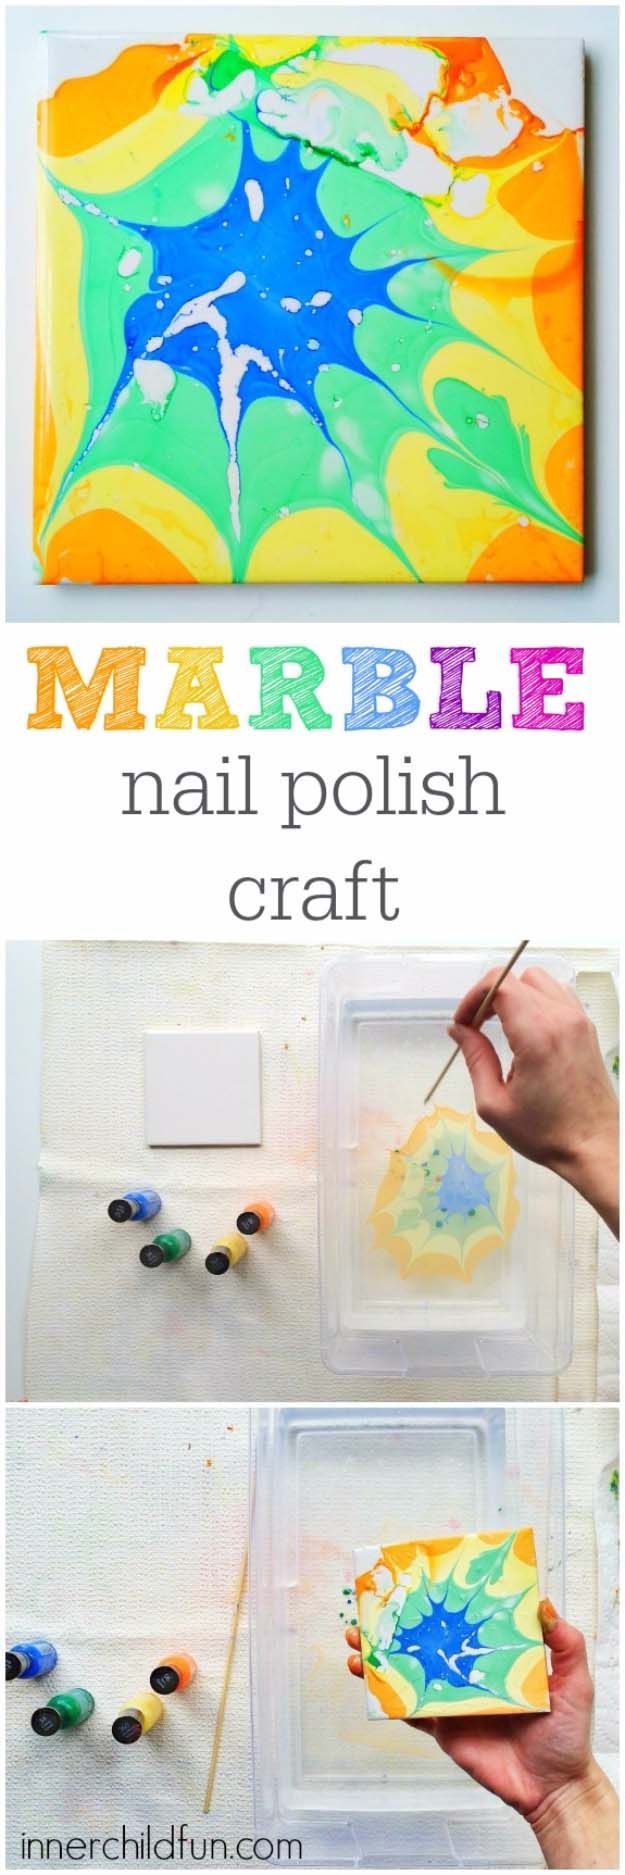 DIY Crafts Using Nail Polish - Fun, Cool, Easy and Cheap Craft Ideas for Girls, Teens, Tweens and Adults |     Marble Nail Polish Craft